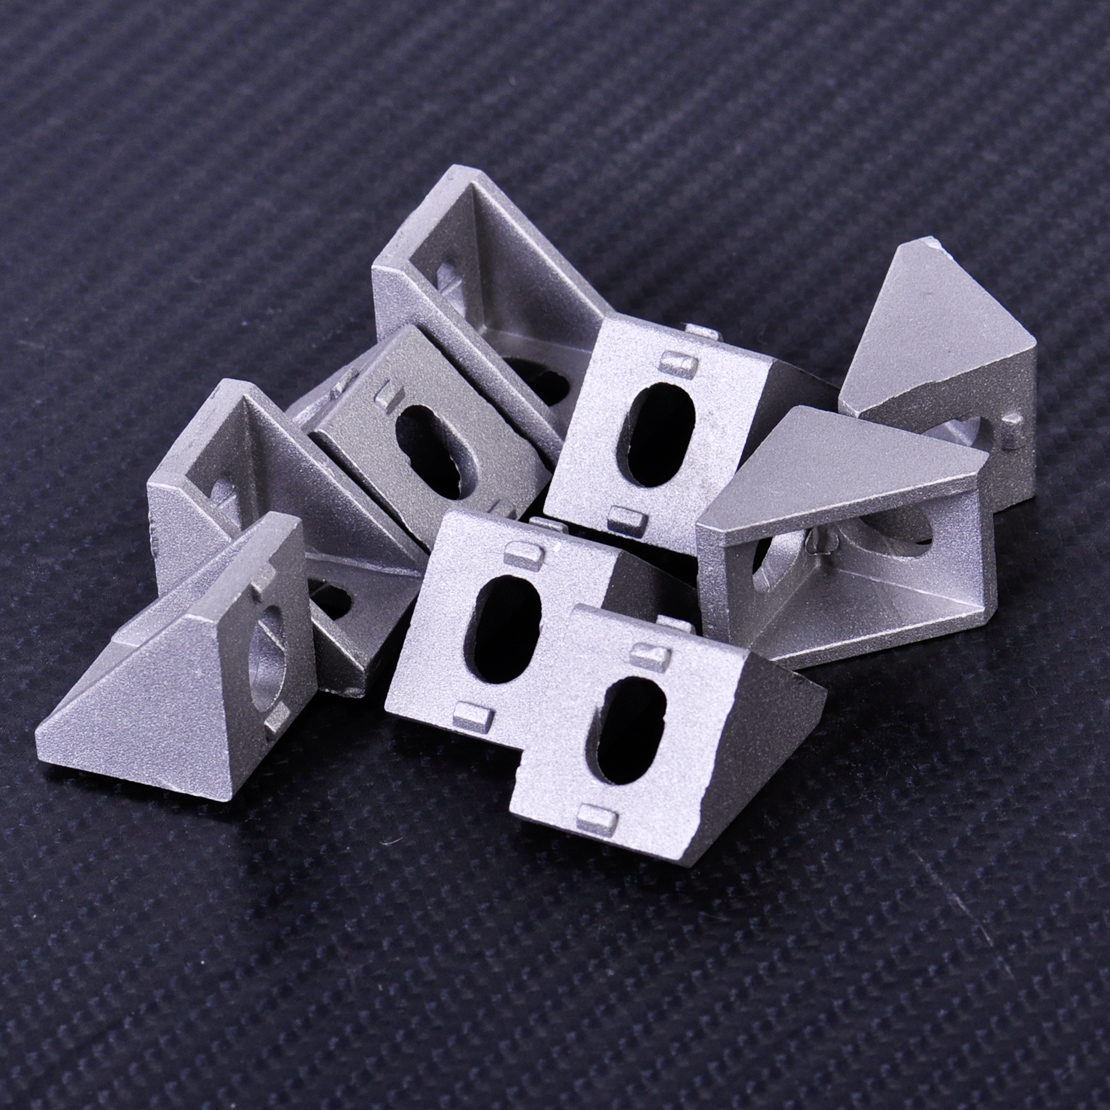 10Pcs 90 Degree Durable Grey Aluminum Corner Bracket  Solid Cast Double Side L Shape Joint Brace Right Angle